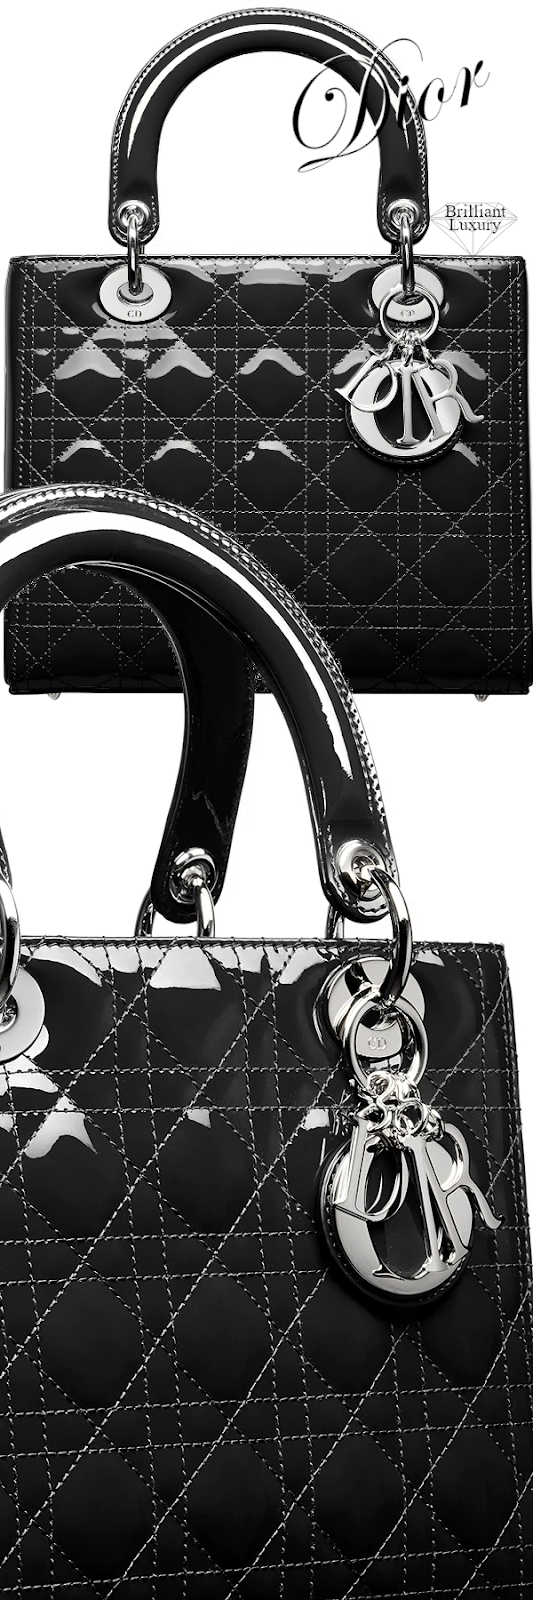 Dior Lady Dior Black Patent Calfskin Bag #brilliantluxury